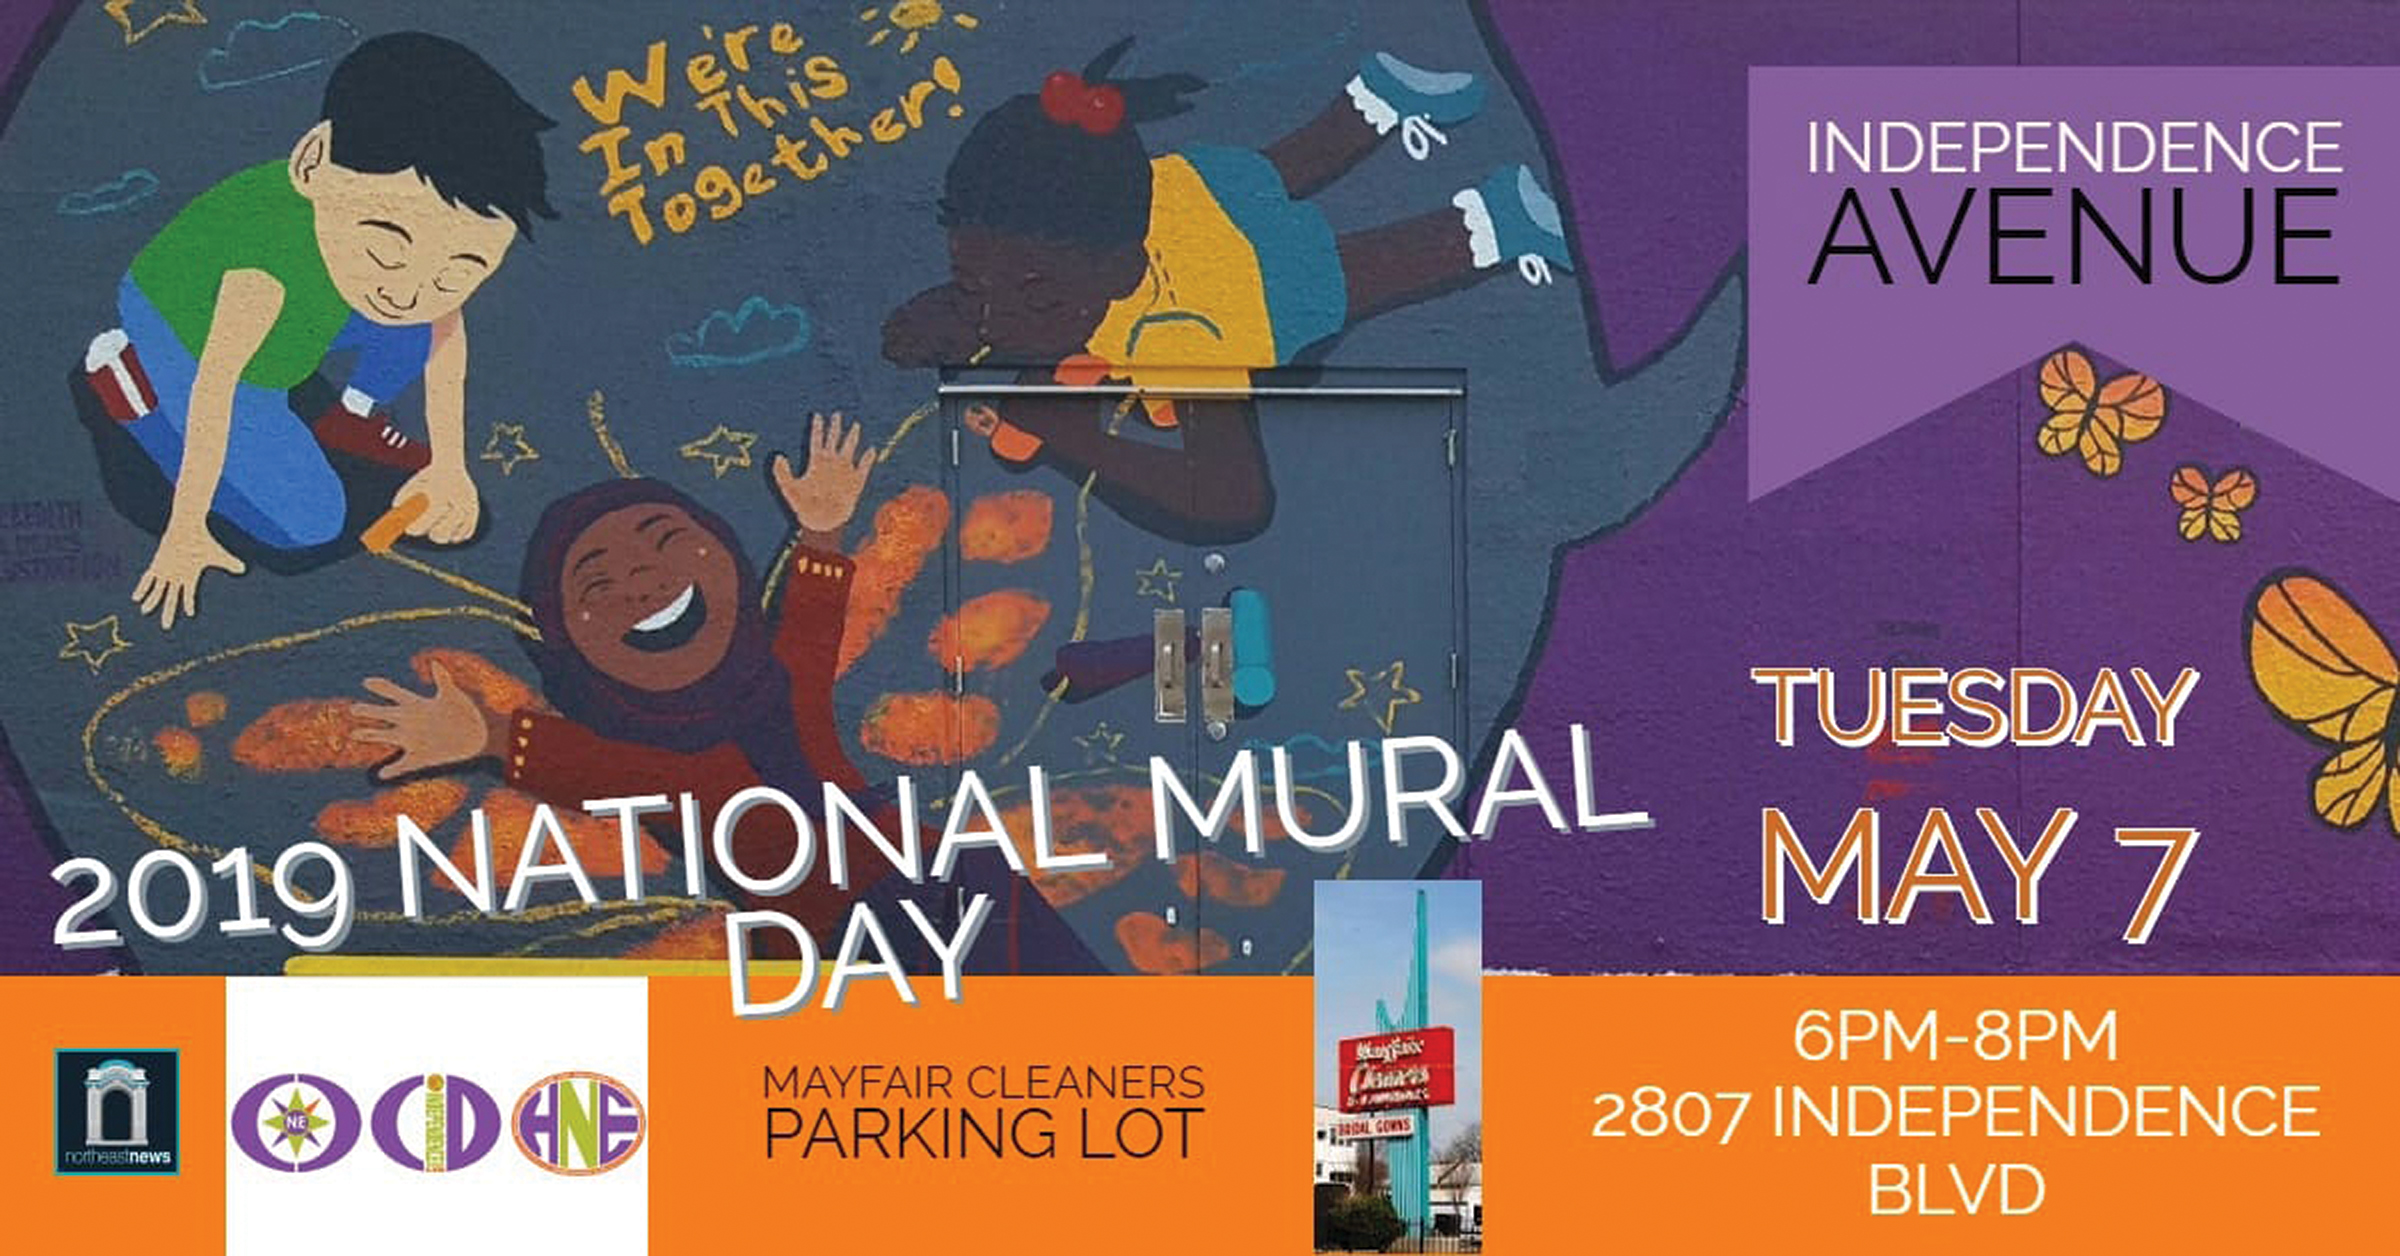 Northeast News | The NEKC Chamber invites you to celebrate National